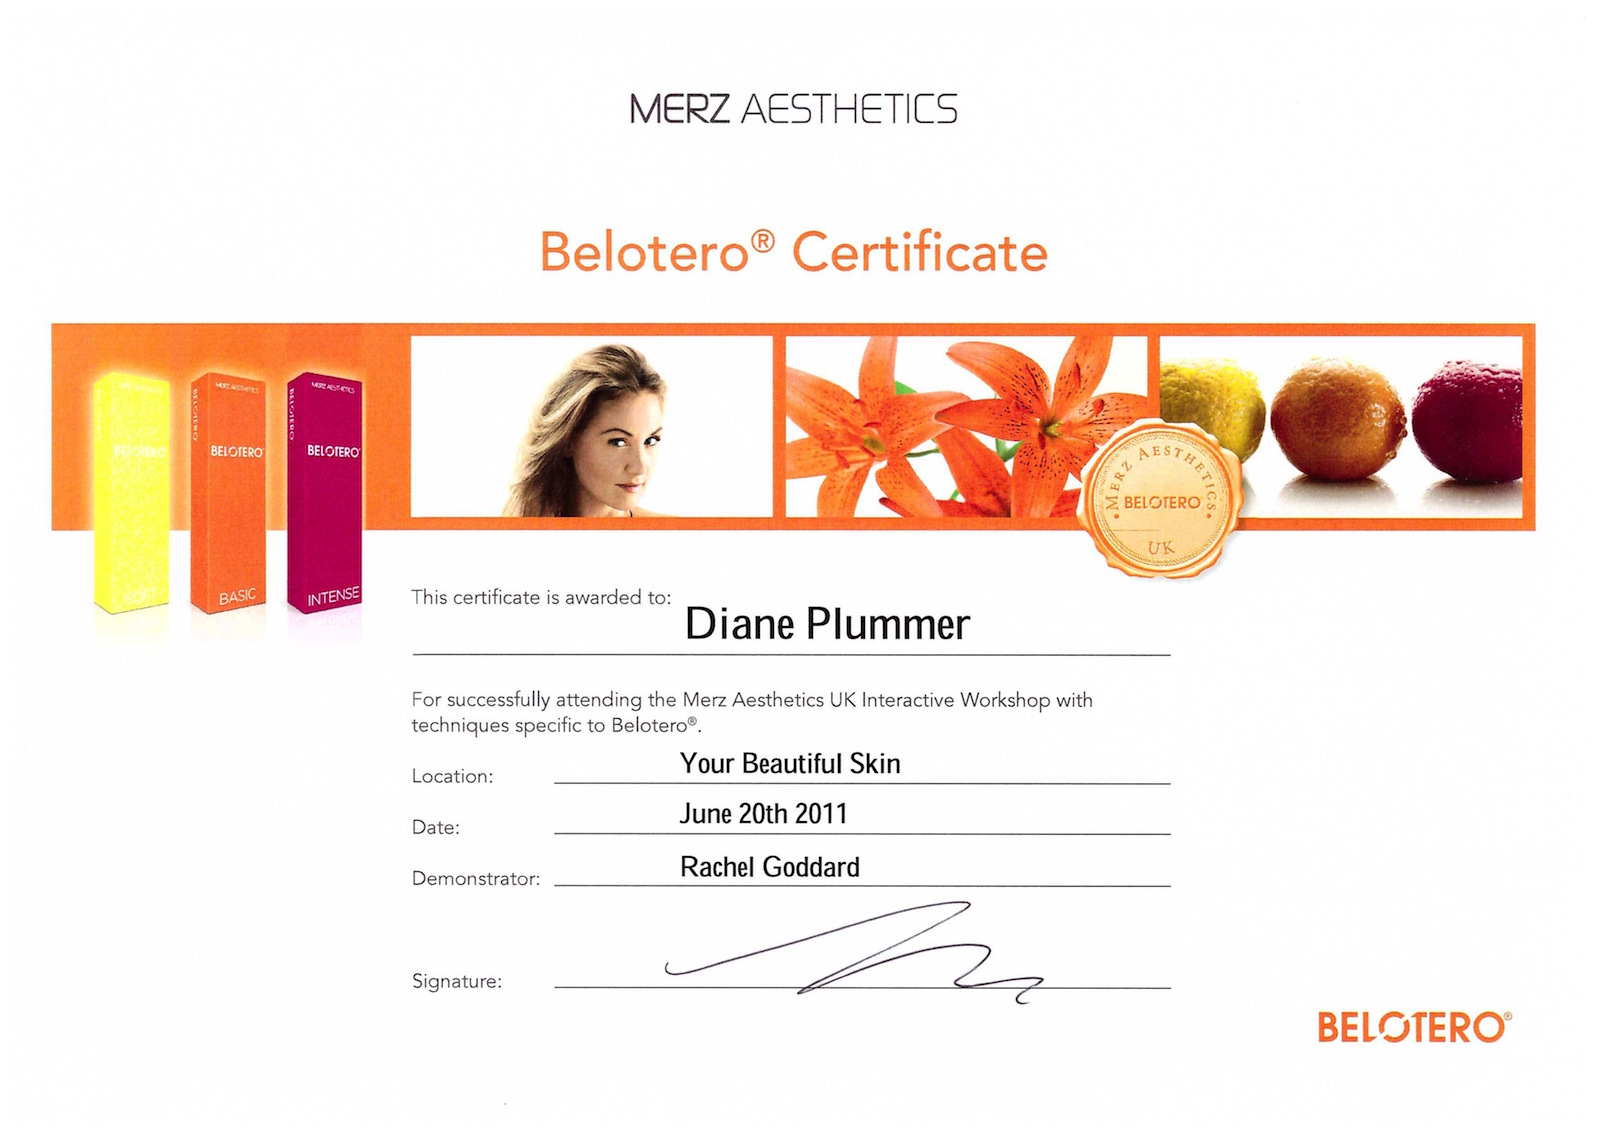 Belotero dermal fillers advanced training awarded to Diane Plummer | Revive Aesthetics